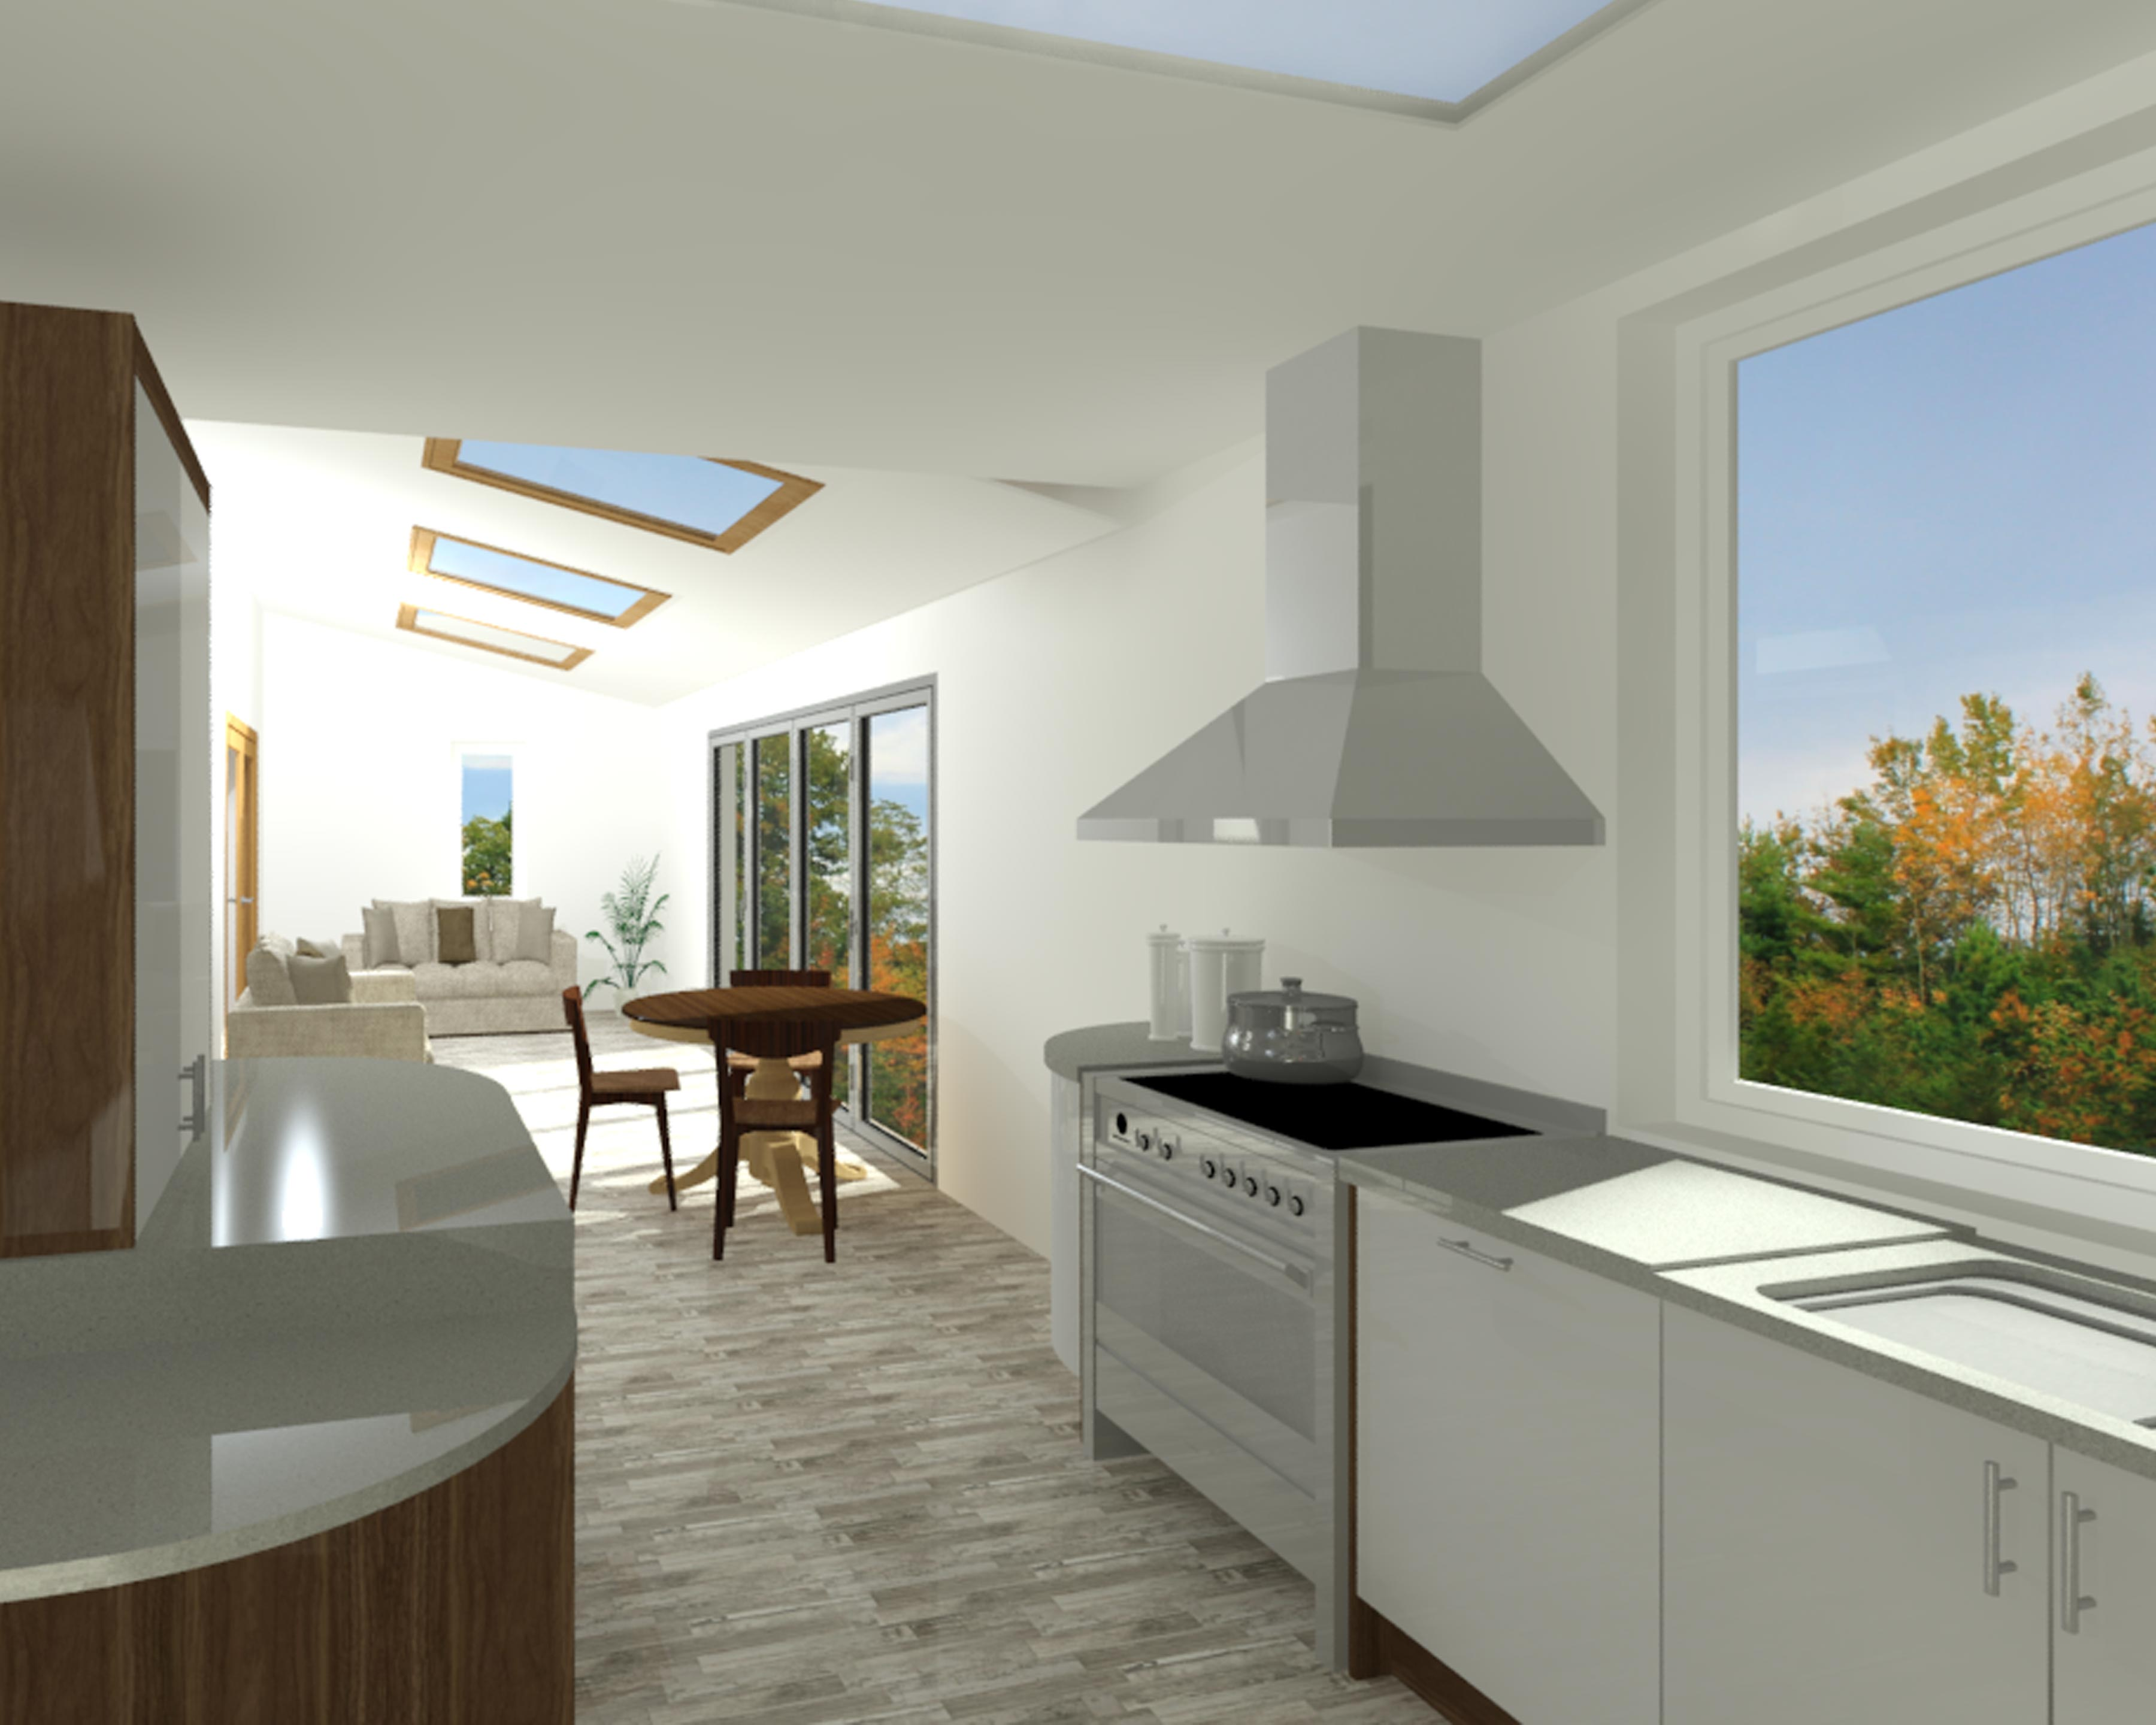 3d Kitchen Renders Before After Experience Your Kitchen Before You Buy